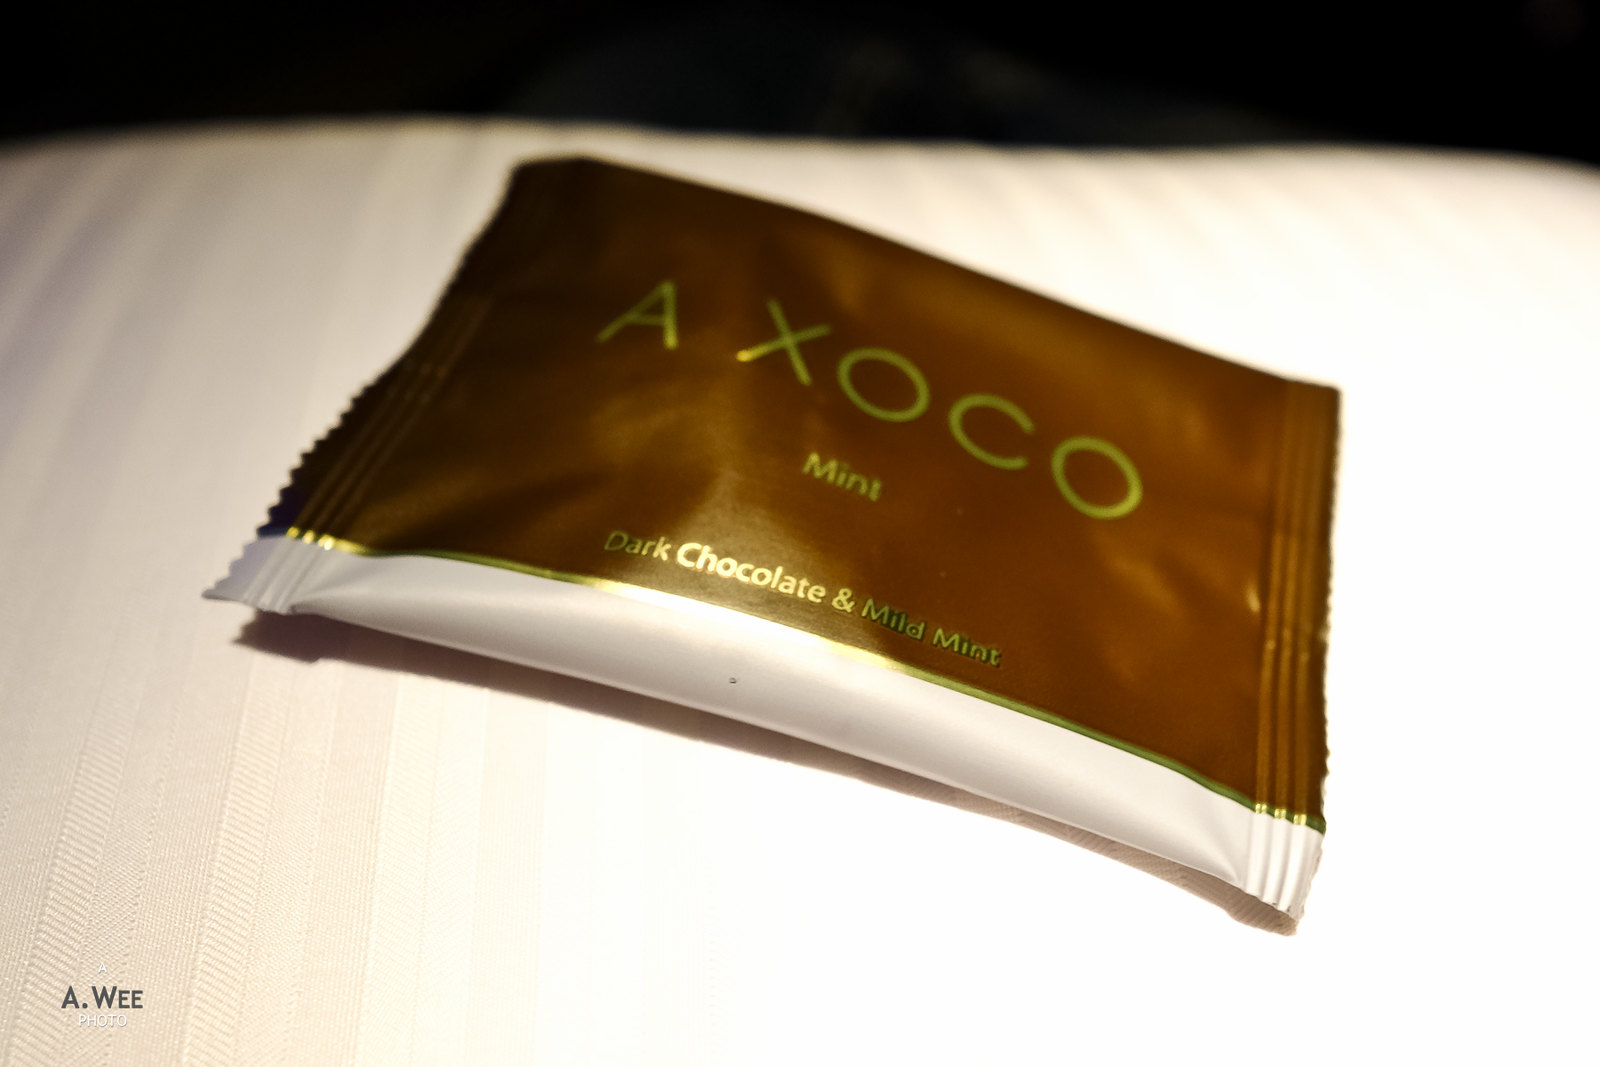 Axoco mint chocolate